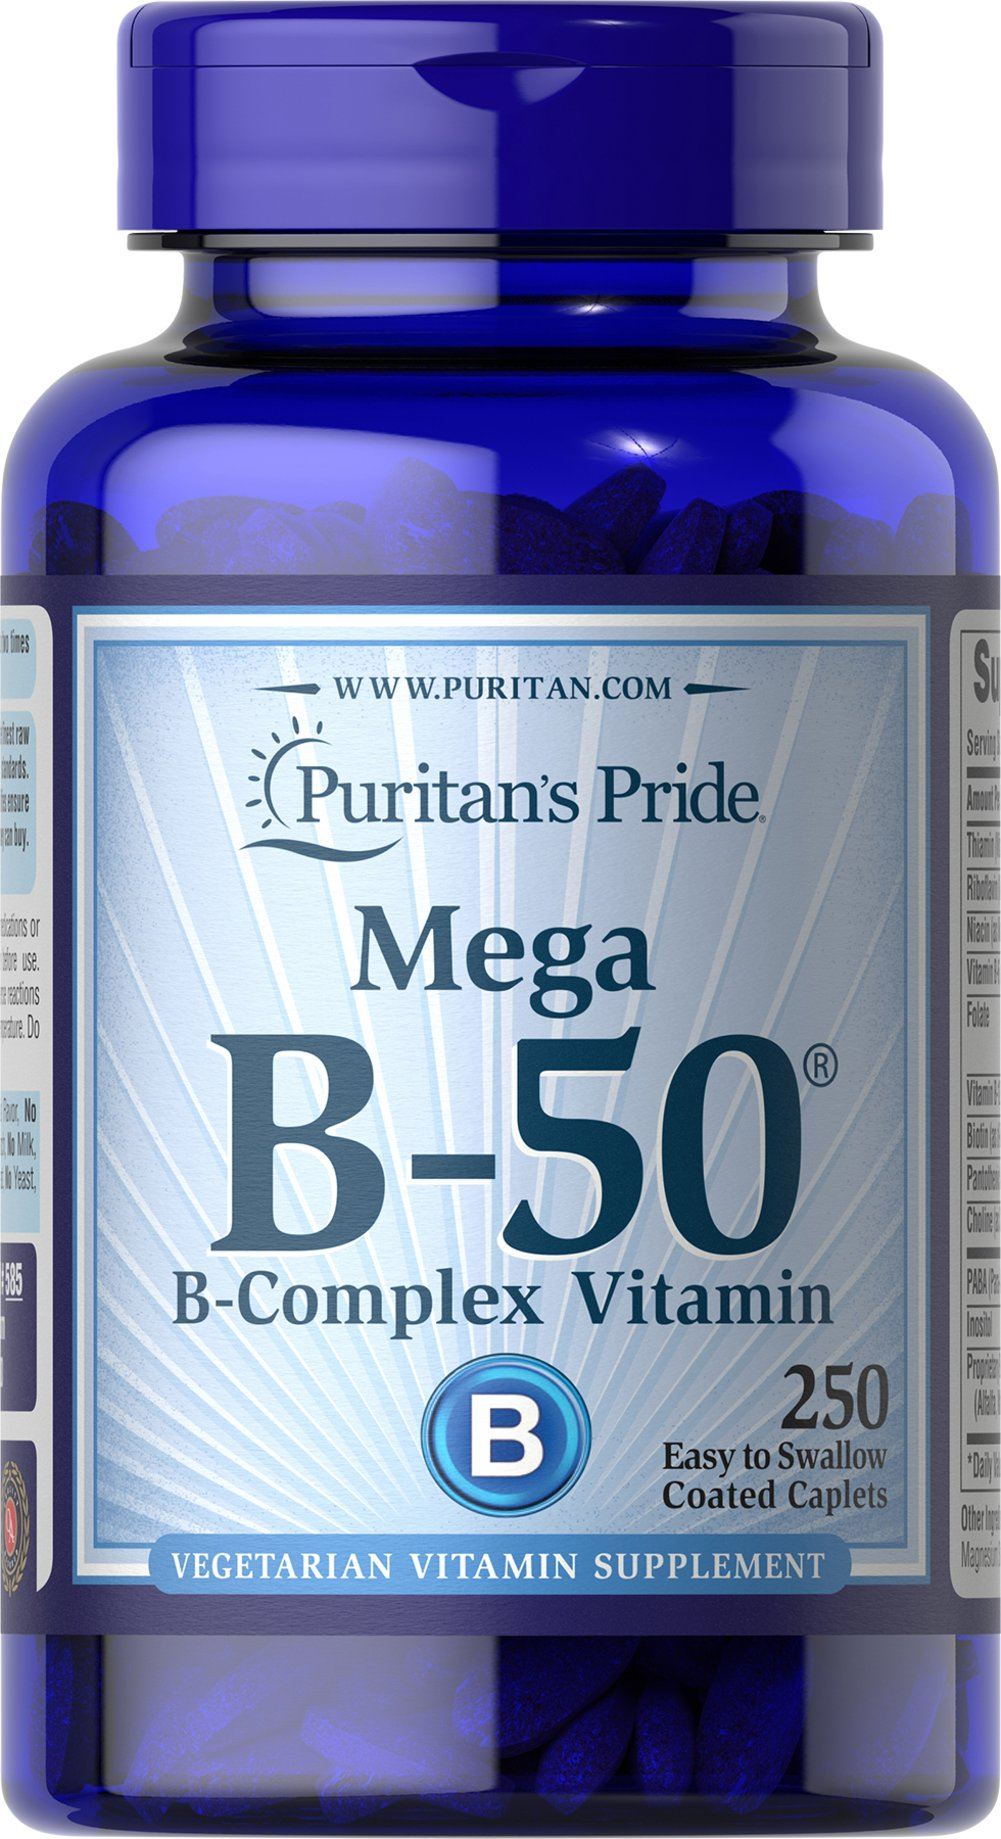 Vitamin B-50® Complex <p>The Vitamin B-50® Complex is made up of several vitamins that work well together to support nervous system health.** B Complex vitamins also promote energy metabolism.** Each nutrient in the Vitamin B Complex performs a unique role in maintaining proper metabolic functioning and is essential for well being.**</p> 250 Tablets 50 mg $37.99